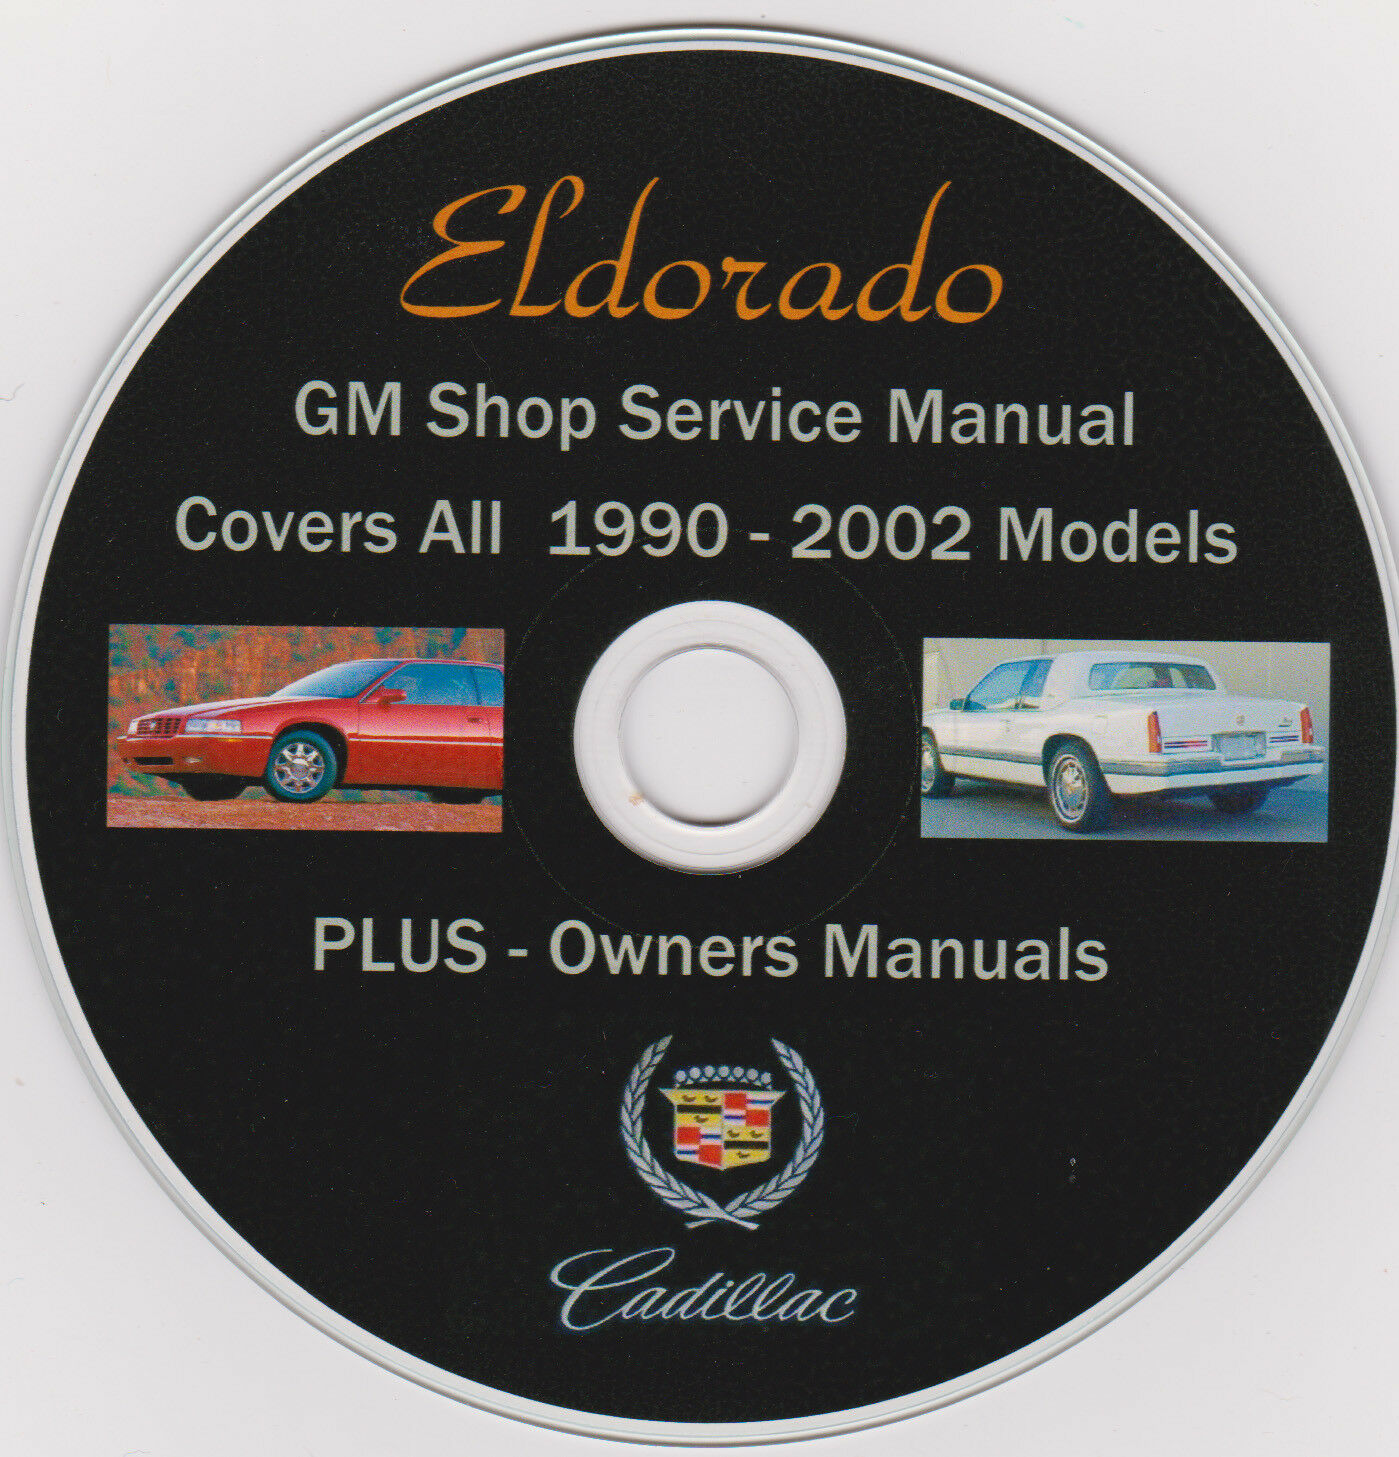 Cadillac ELDORADO-1990 -2002 Original GM SHOP REPAIR MANUAL,PLUS Owners  Manuals 1 of 2Only 4 available See More